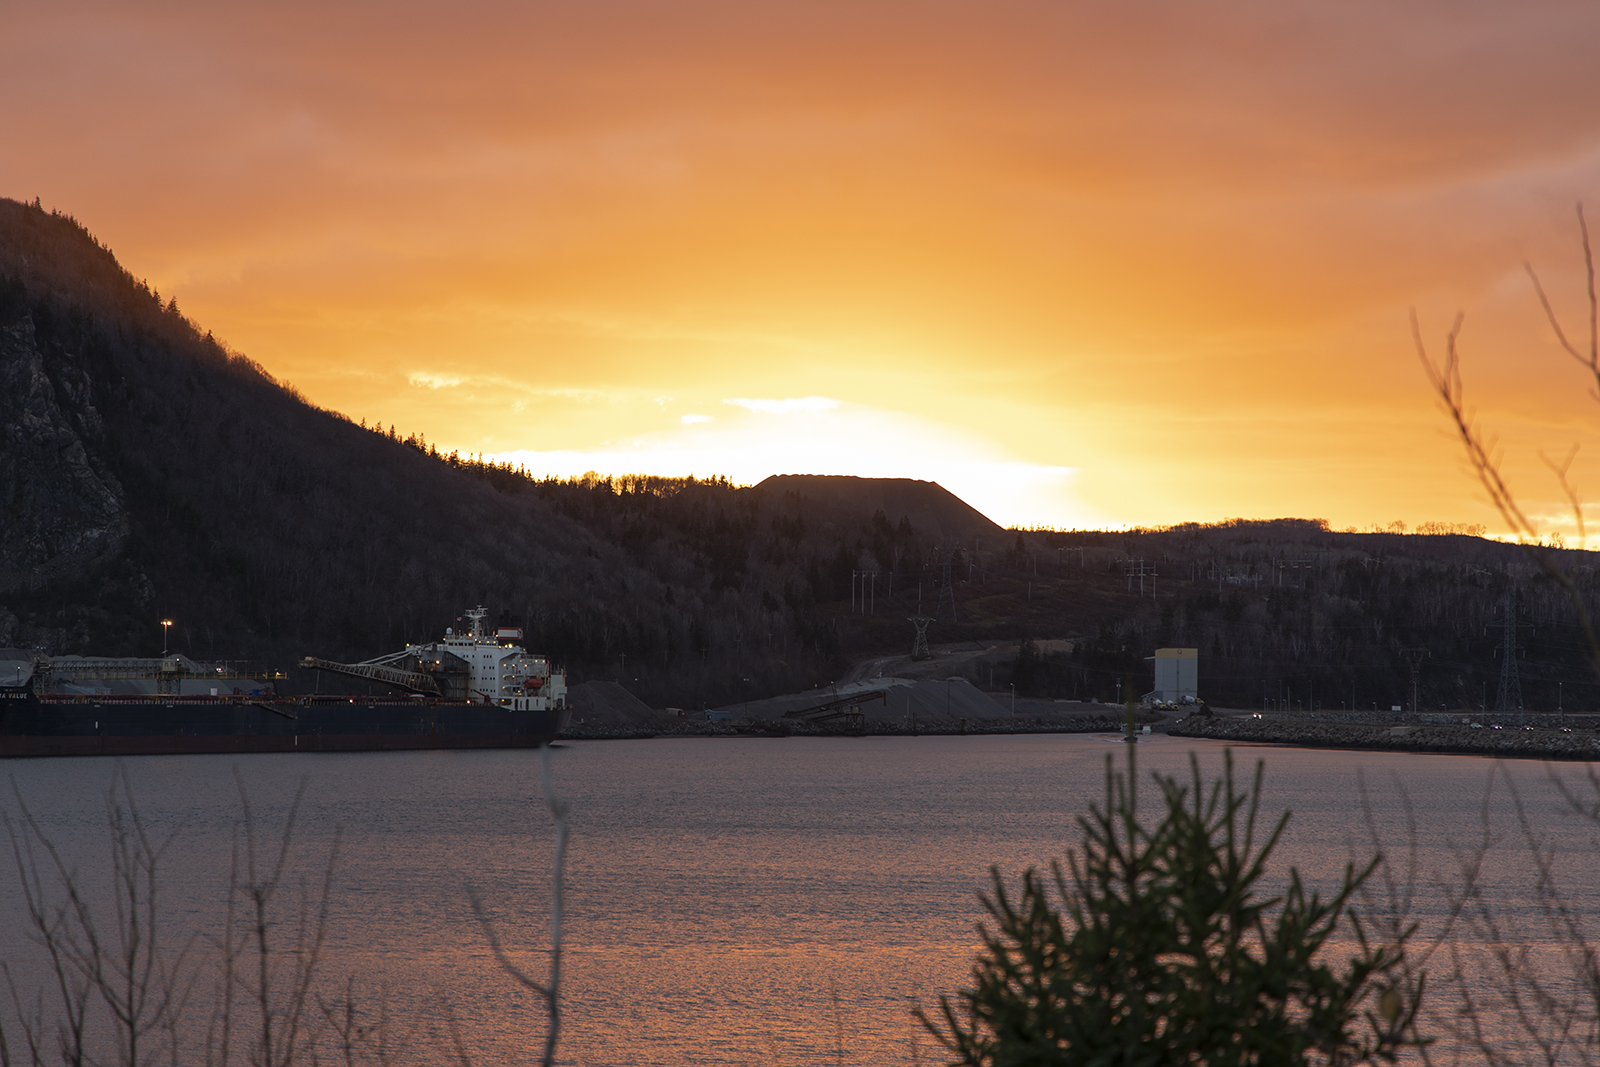 Canso-sunset-03-BRimages.ca